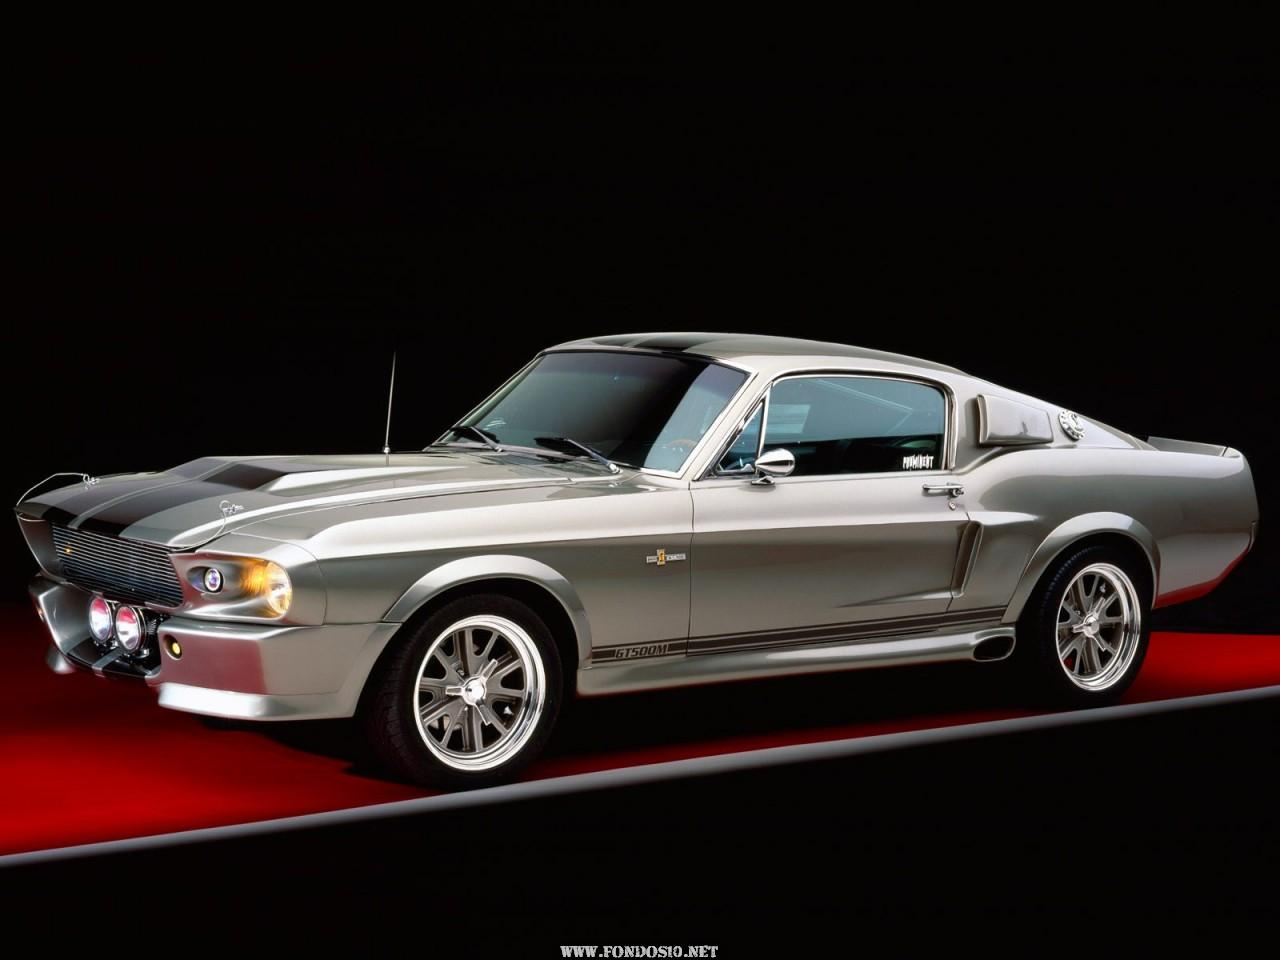 ford mustang hd wallpapers hd car wallpapers. Black Bedroom Furniture Sets. Home Design Ideas